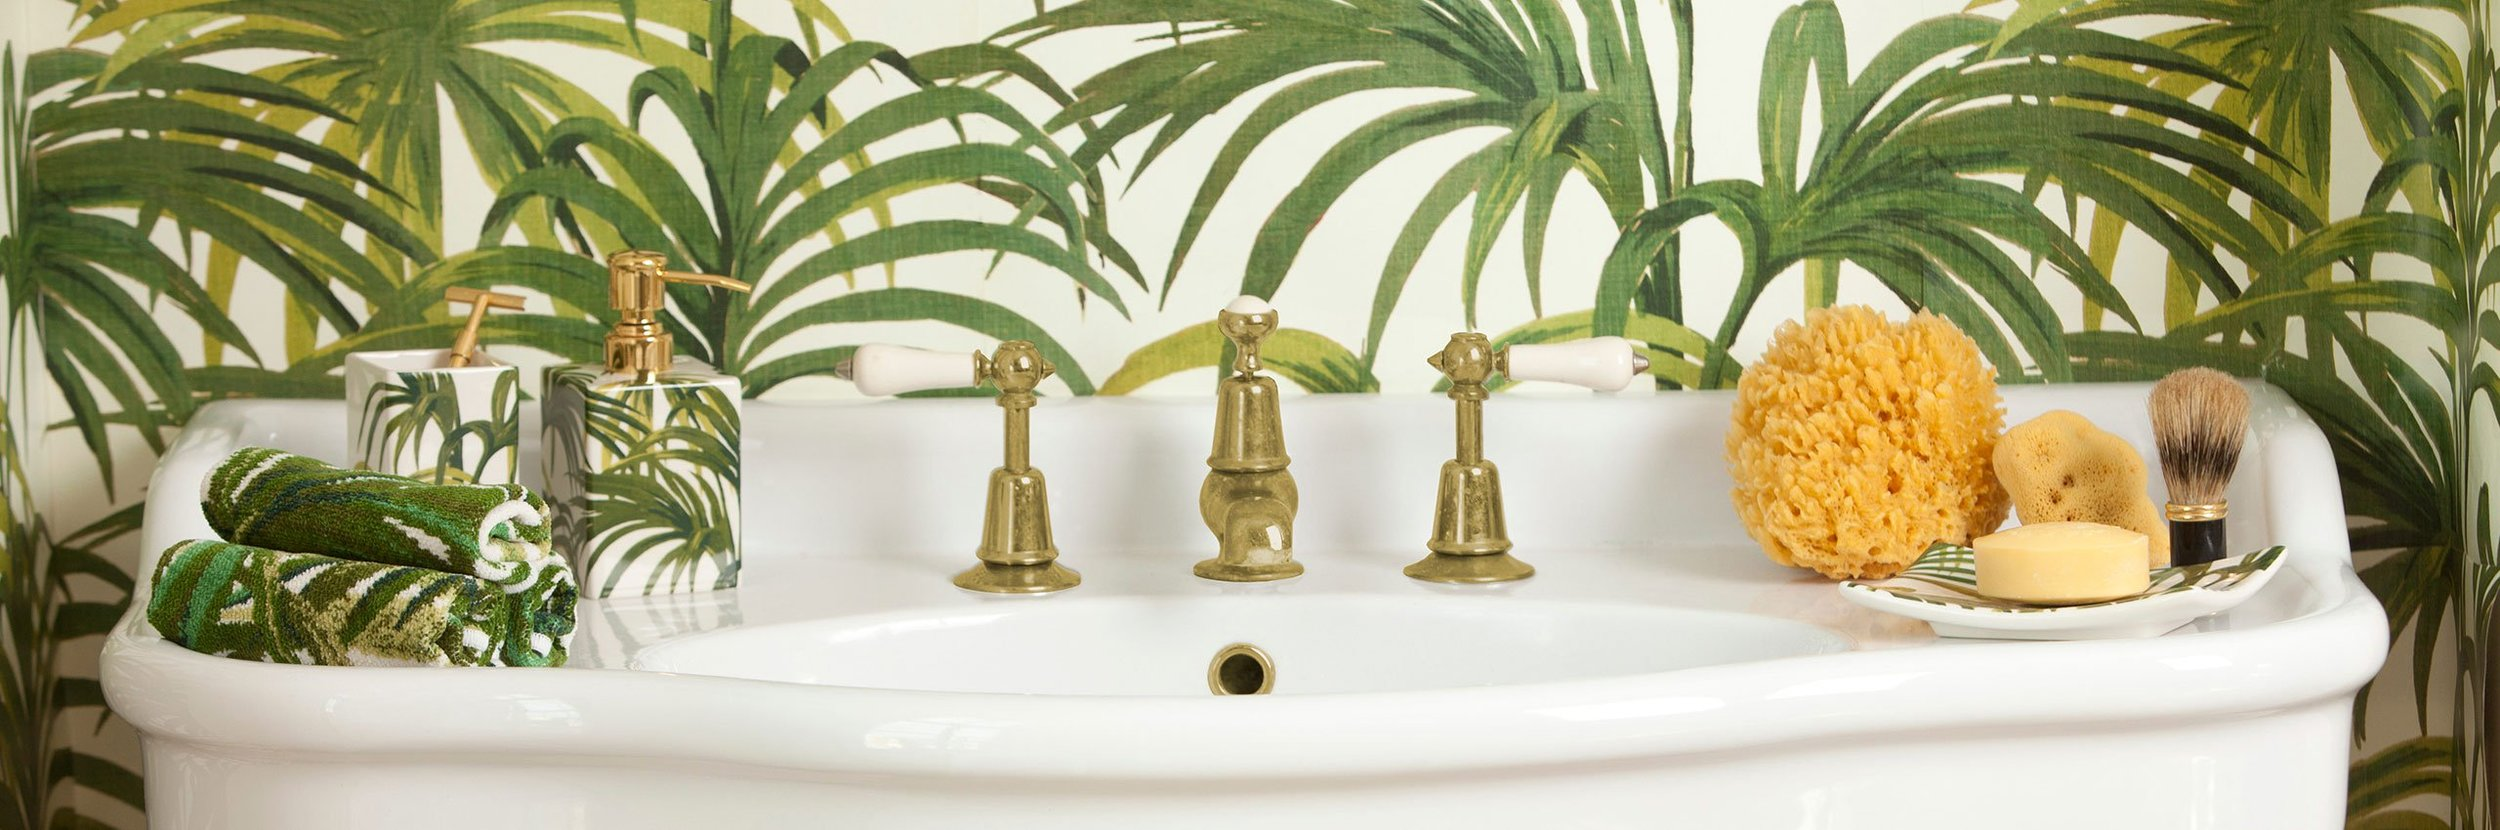 Palmeral ceramic bathroom gift set £55  www.houseofhackney.com